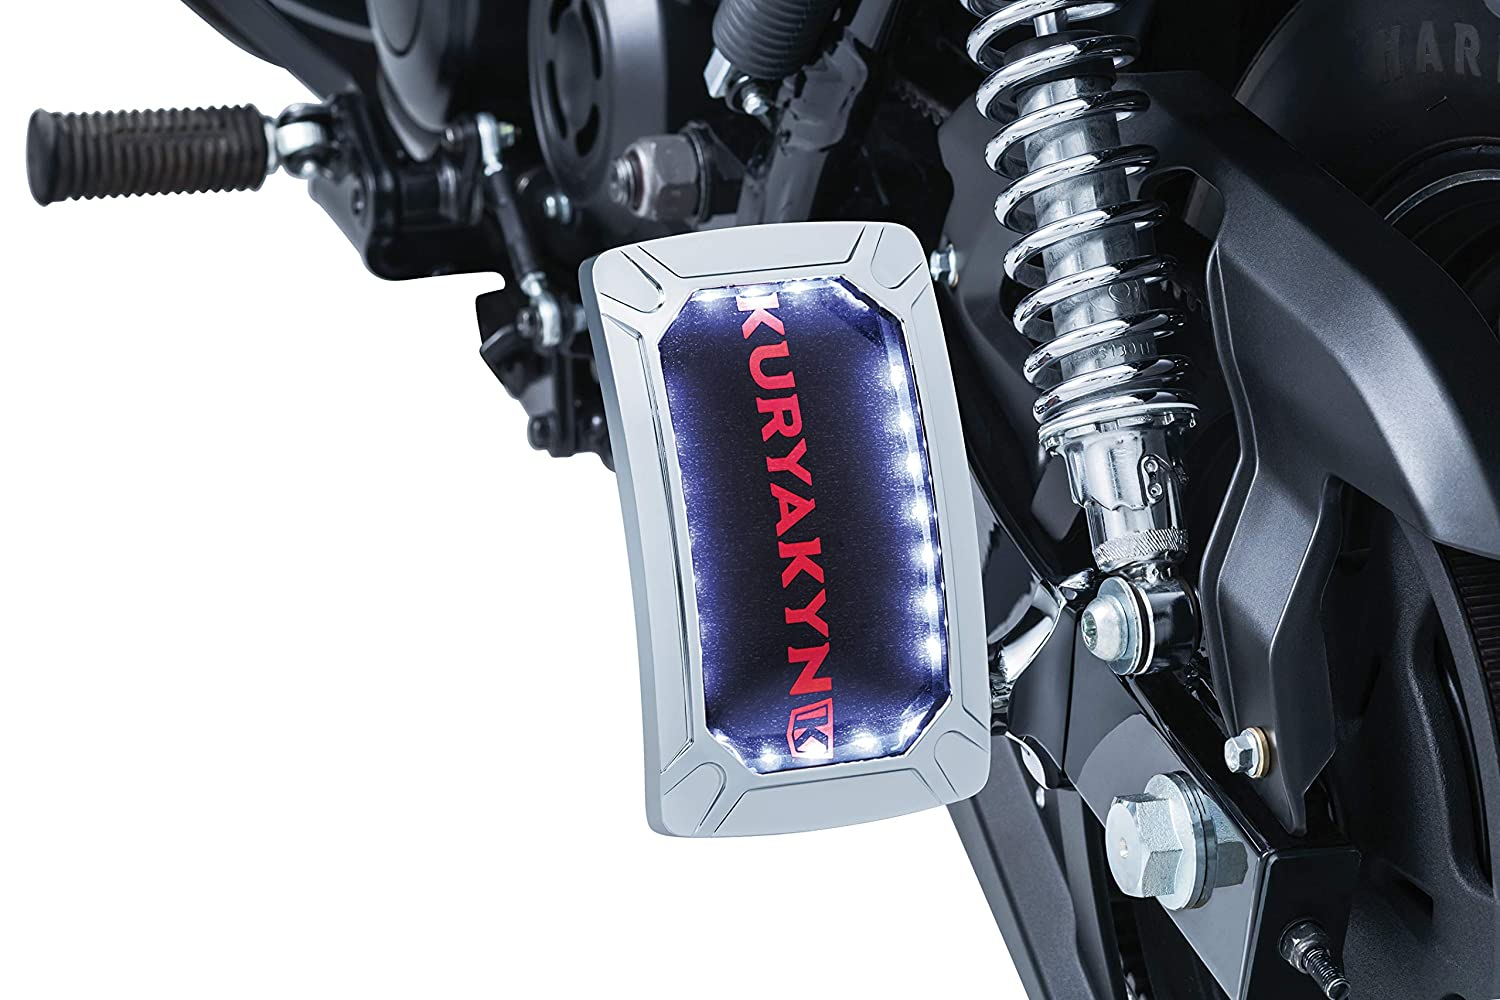 Vertical Side Mount Kuryakyn 3190 Motorcycle Accent Accessory Nova Curved License Plate Holder and Frame with Wraparound LED Illumination Lighting Chrome